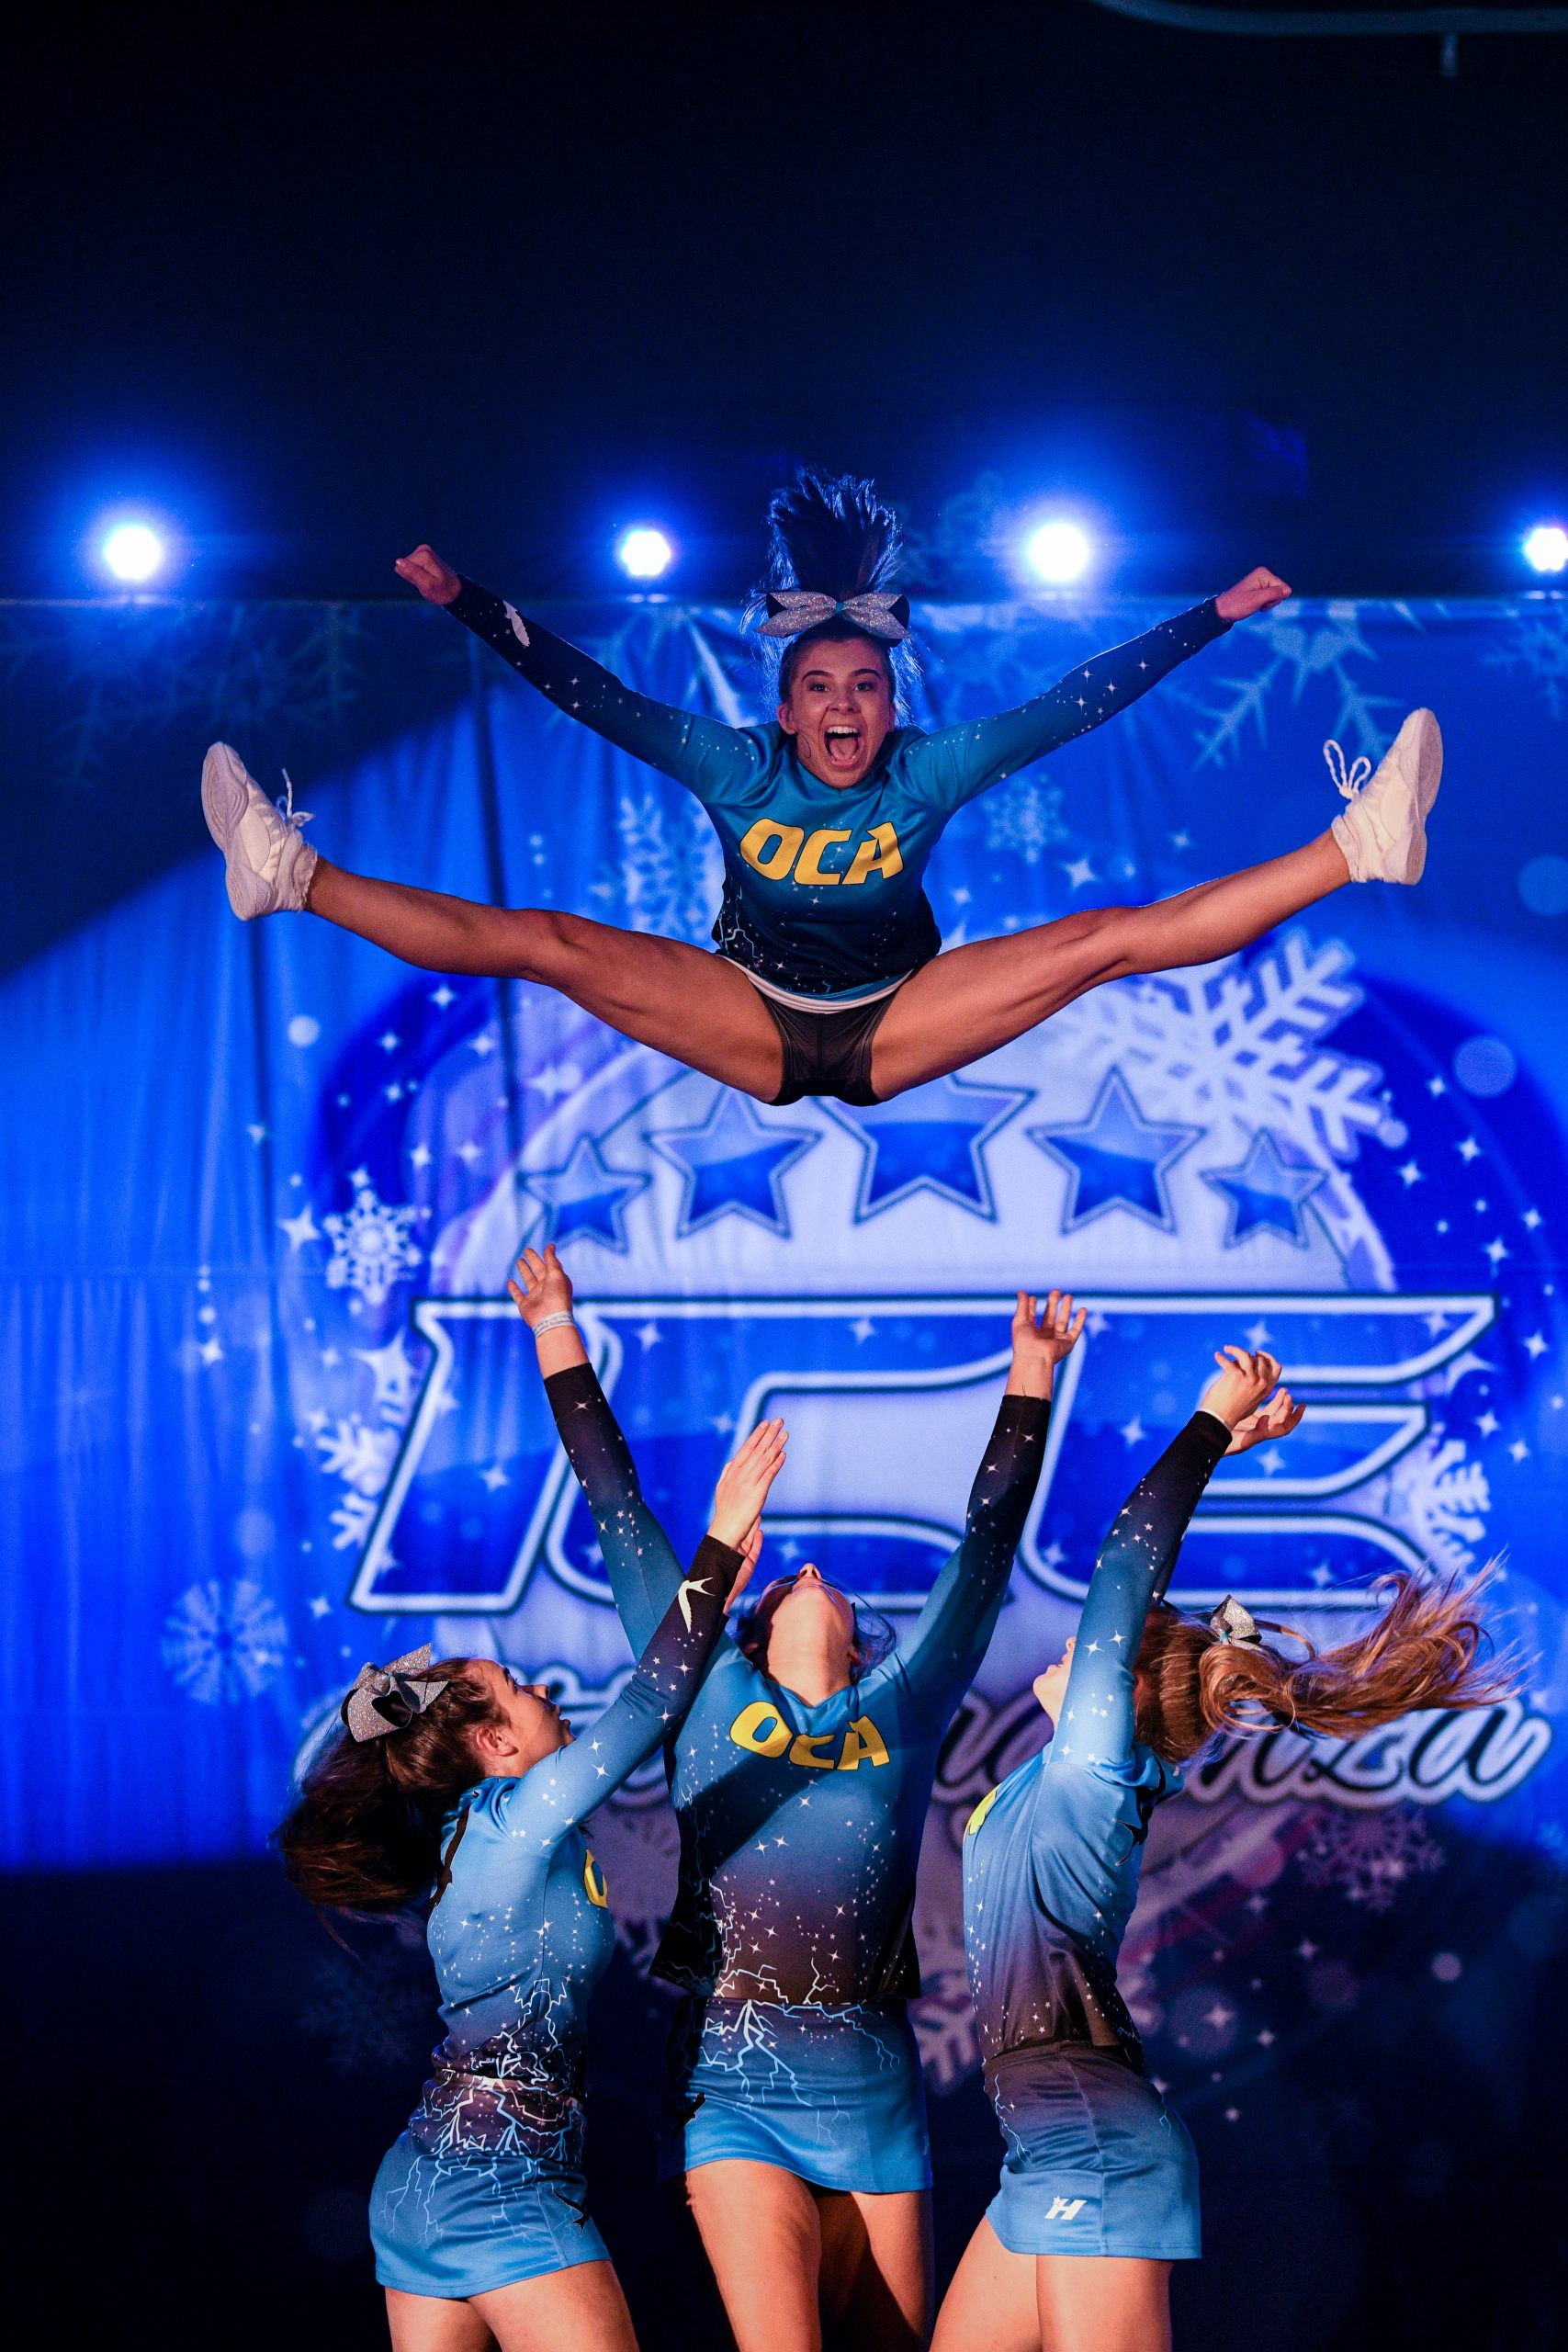 A cheer team compete a basket toss at ICE Championships